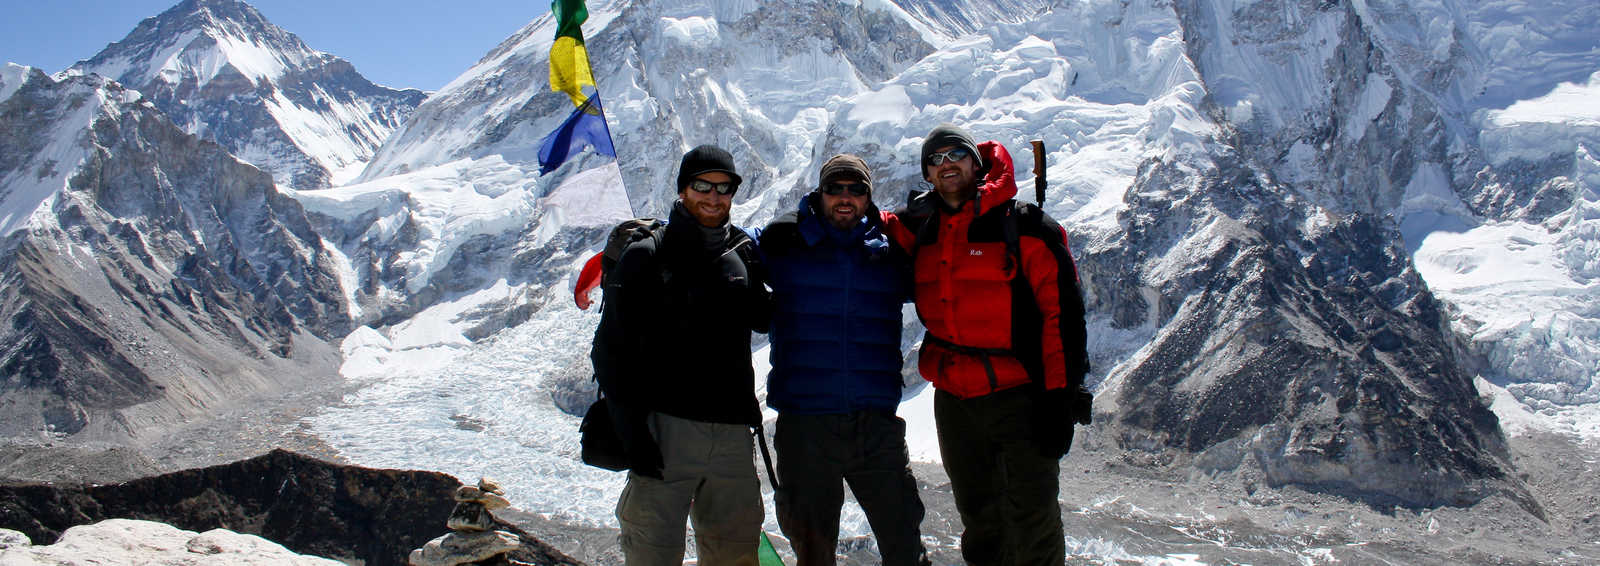 Group summit of Kala Pattar (5545m). Mt Everest in the background, Everest Basecamp Trek